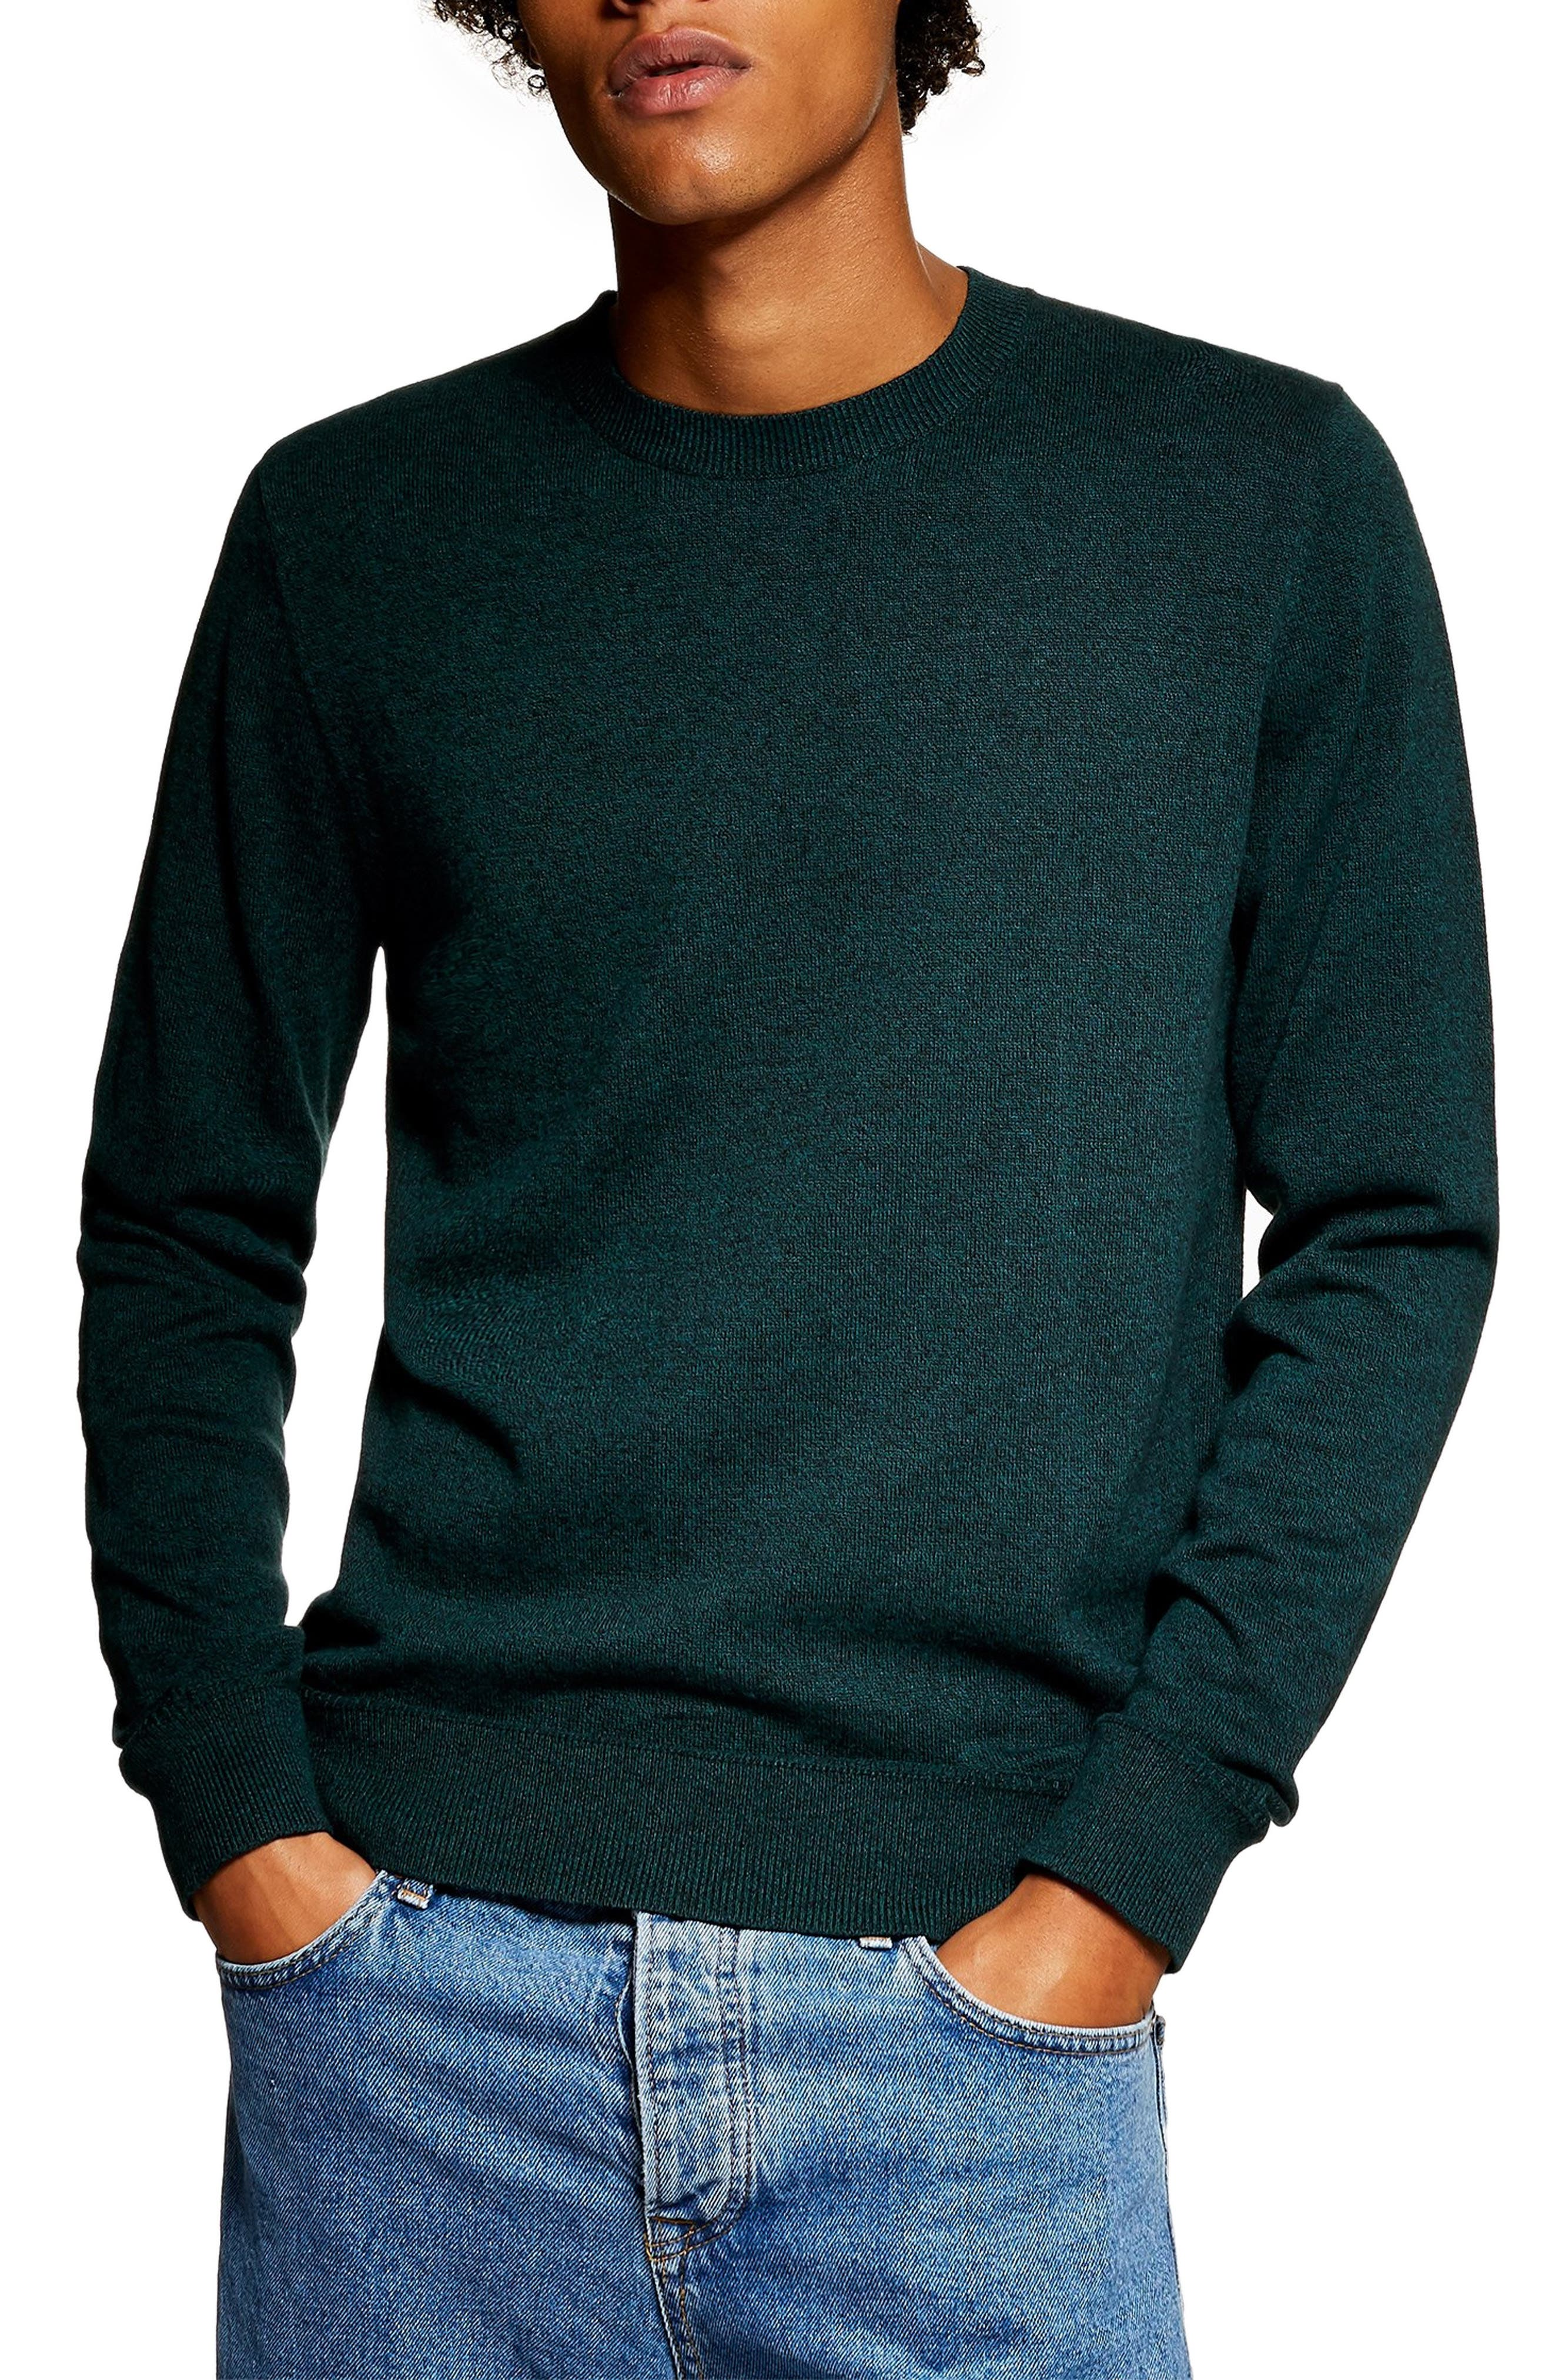 Marl Crewneck Sweater,                         Main,                         color, GREEN